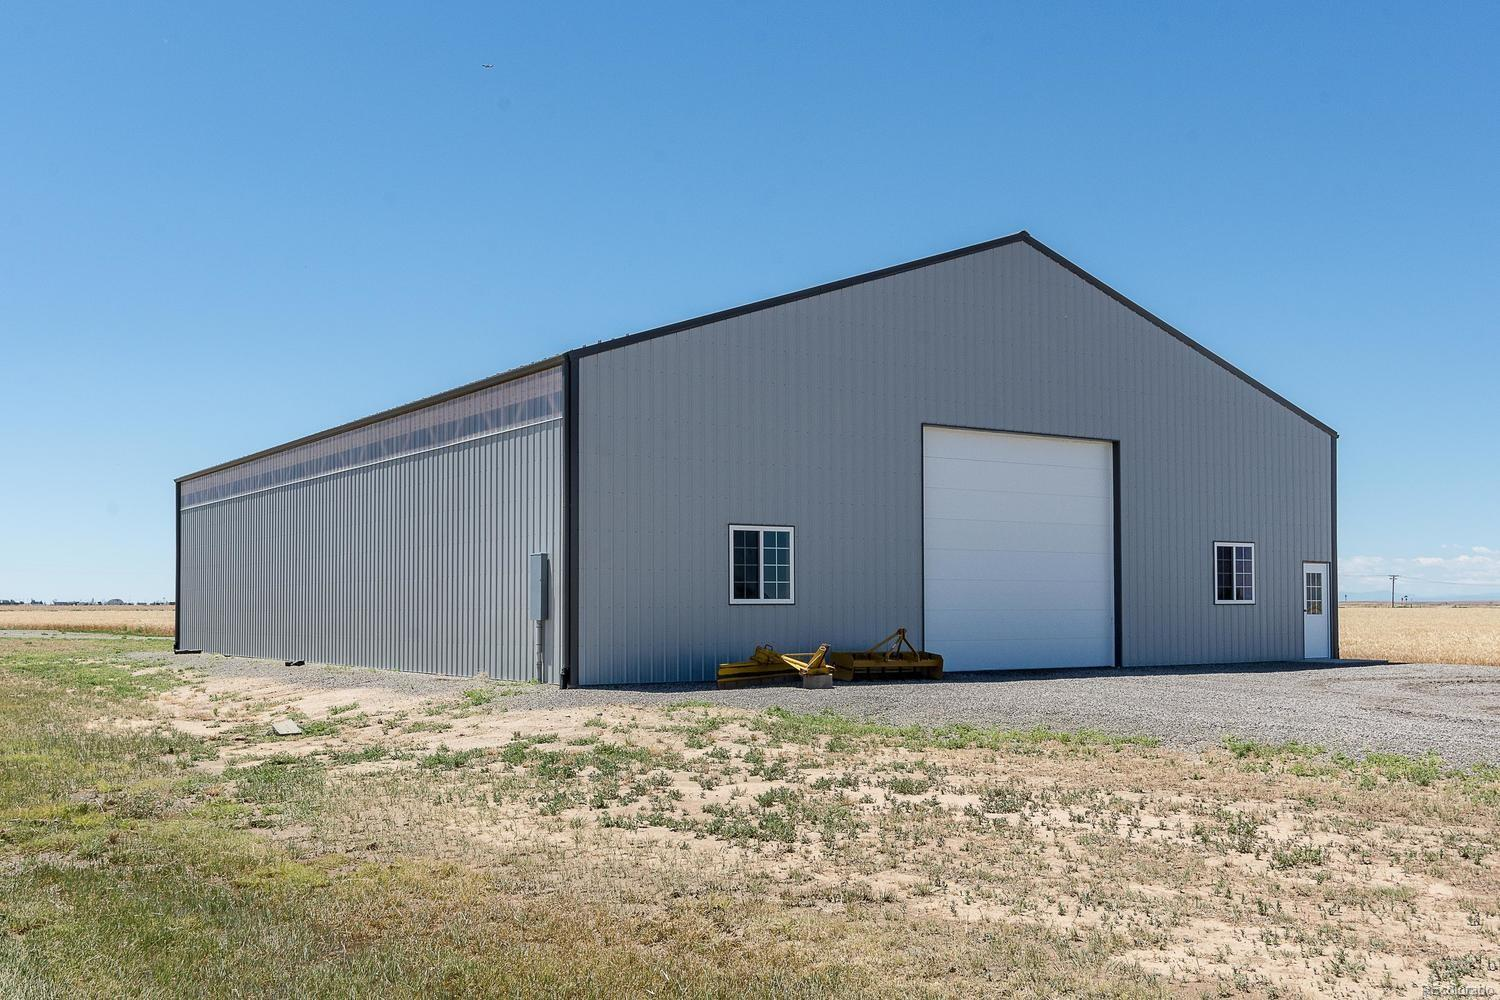 Massive steel building with 200 amp 240 service, pass through doors, elevated st